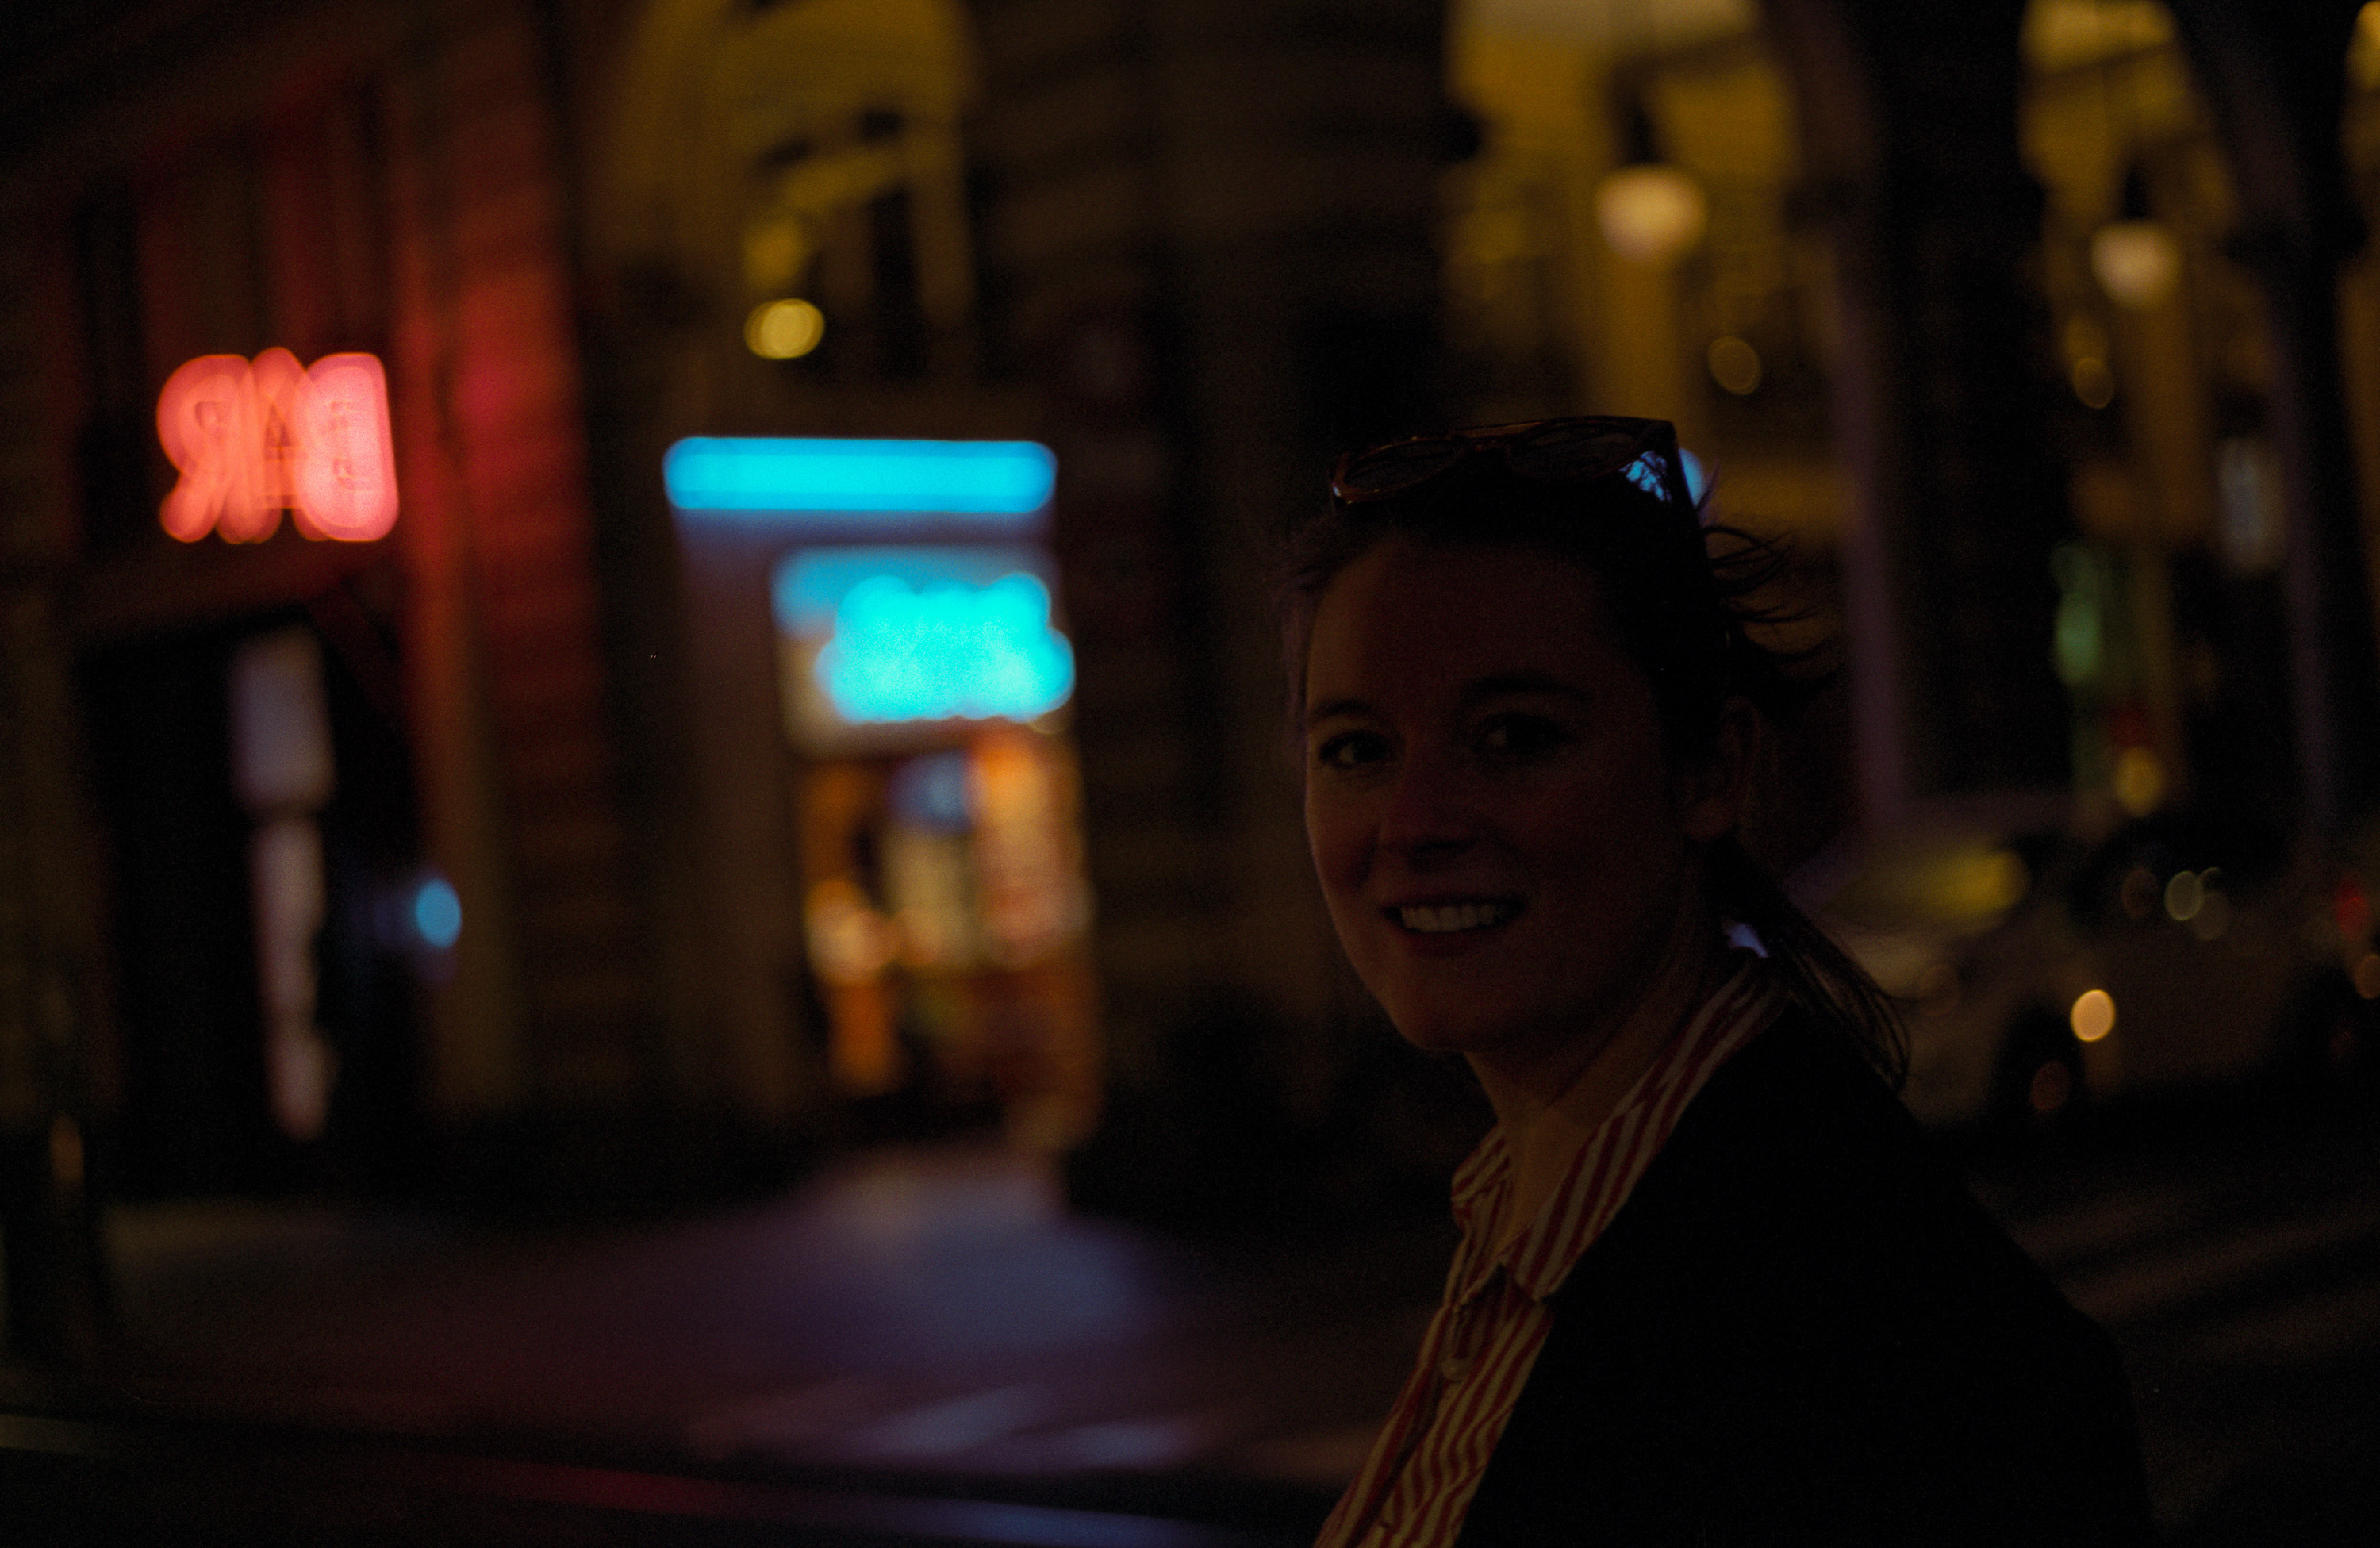 Julie Curto in Turin at night.